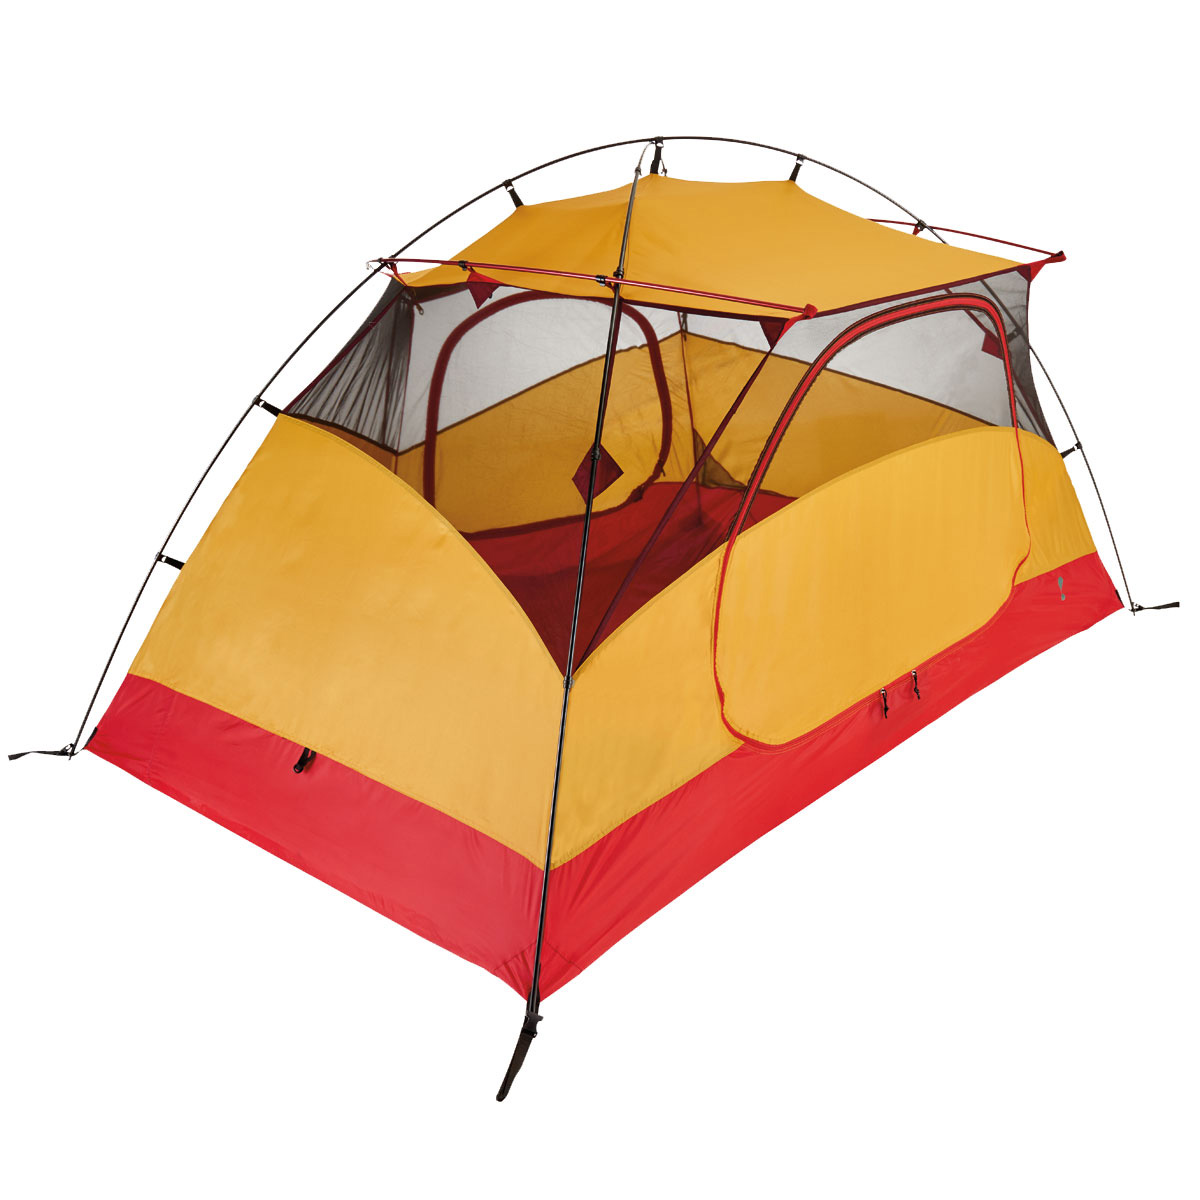 Suite Dream 2 person tent without rainfly